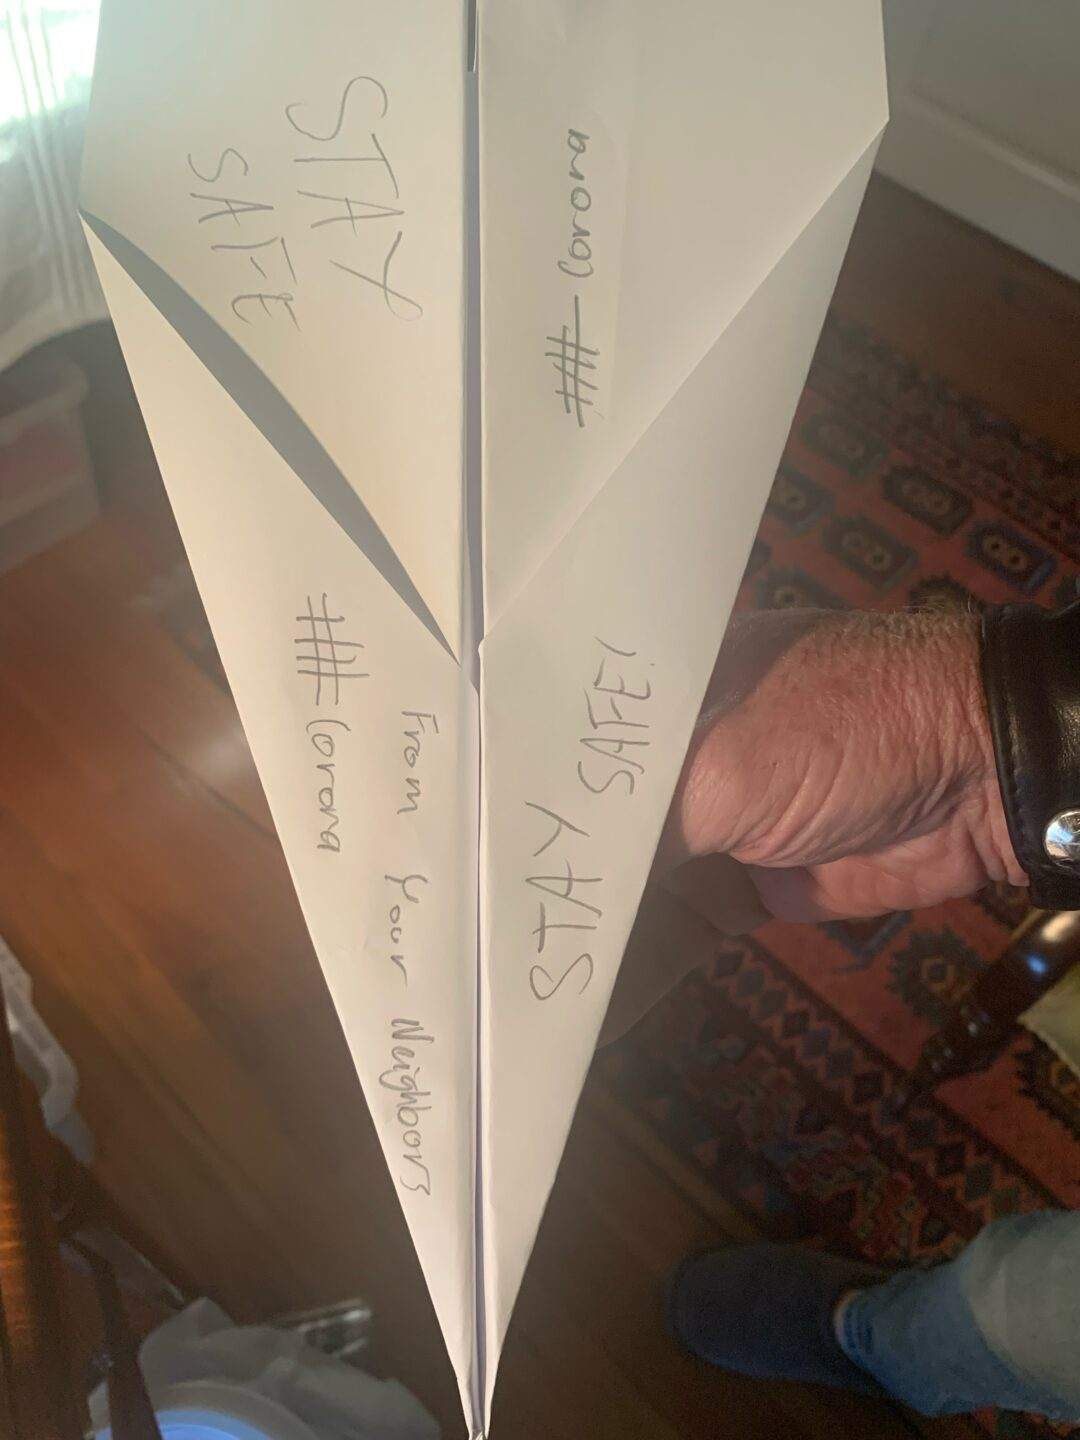 One white paper airplane with 'stay safe' and #Corona written on it in pencil. It is being held my a hand, and a polished wooden floorboard with a rug are visible.